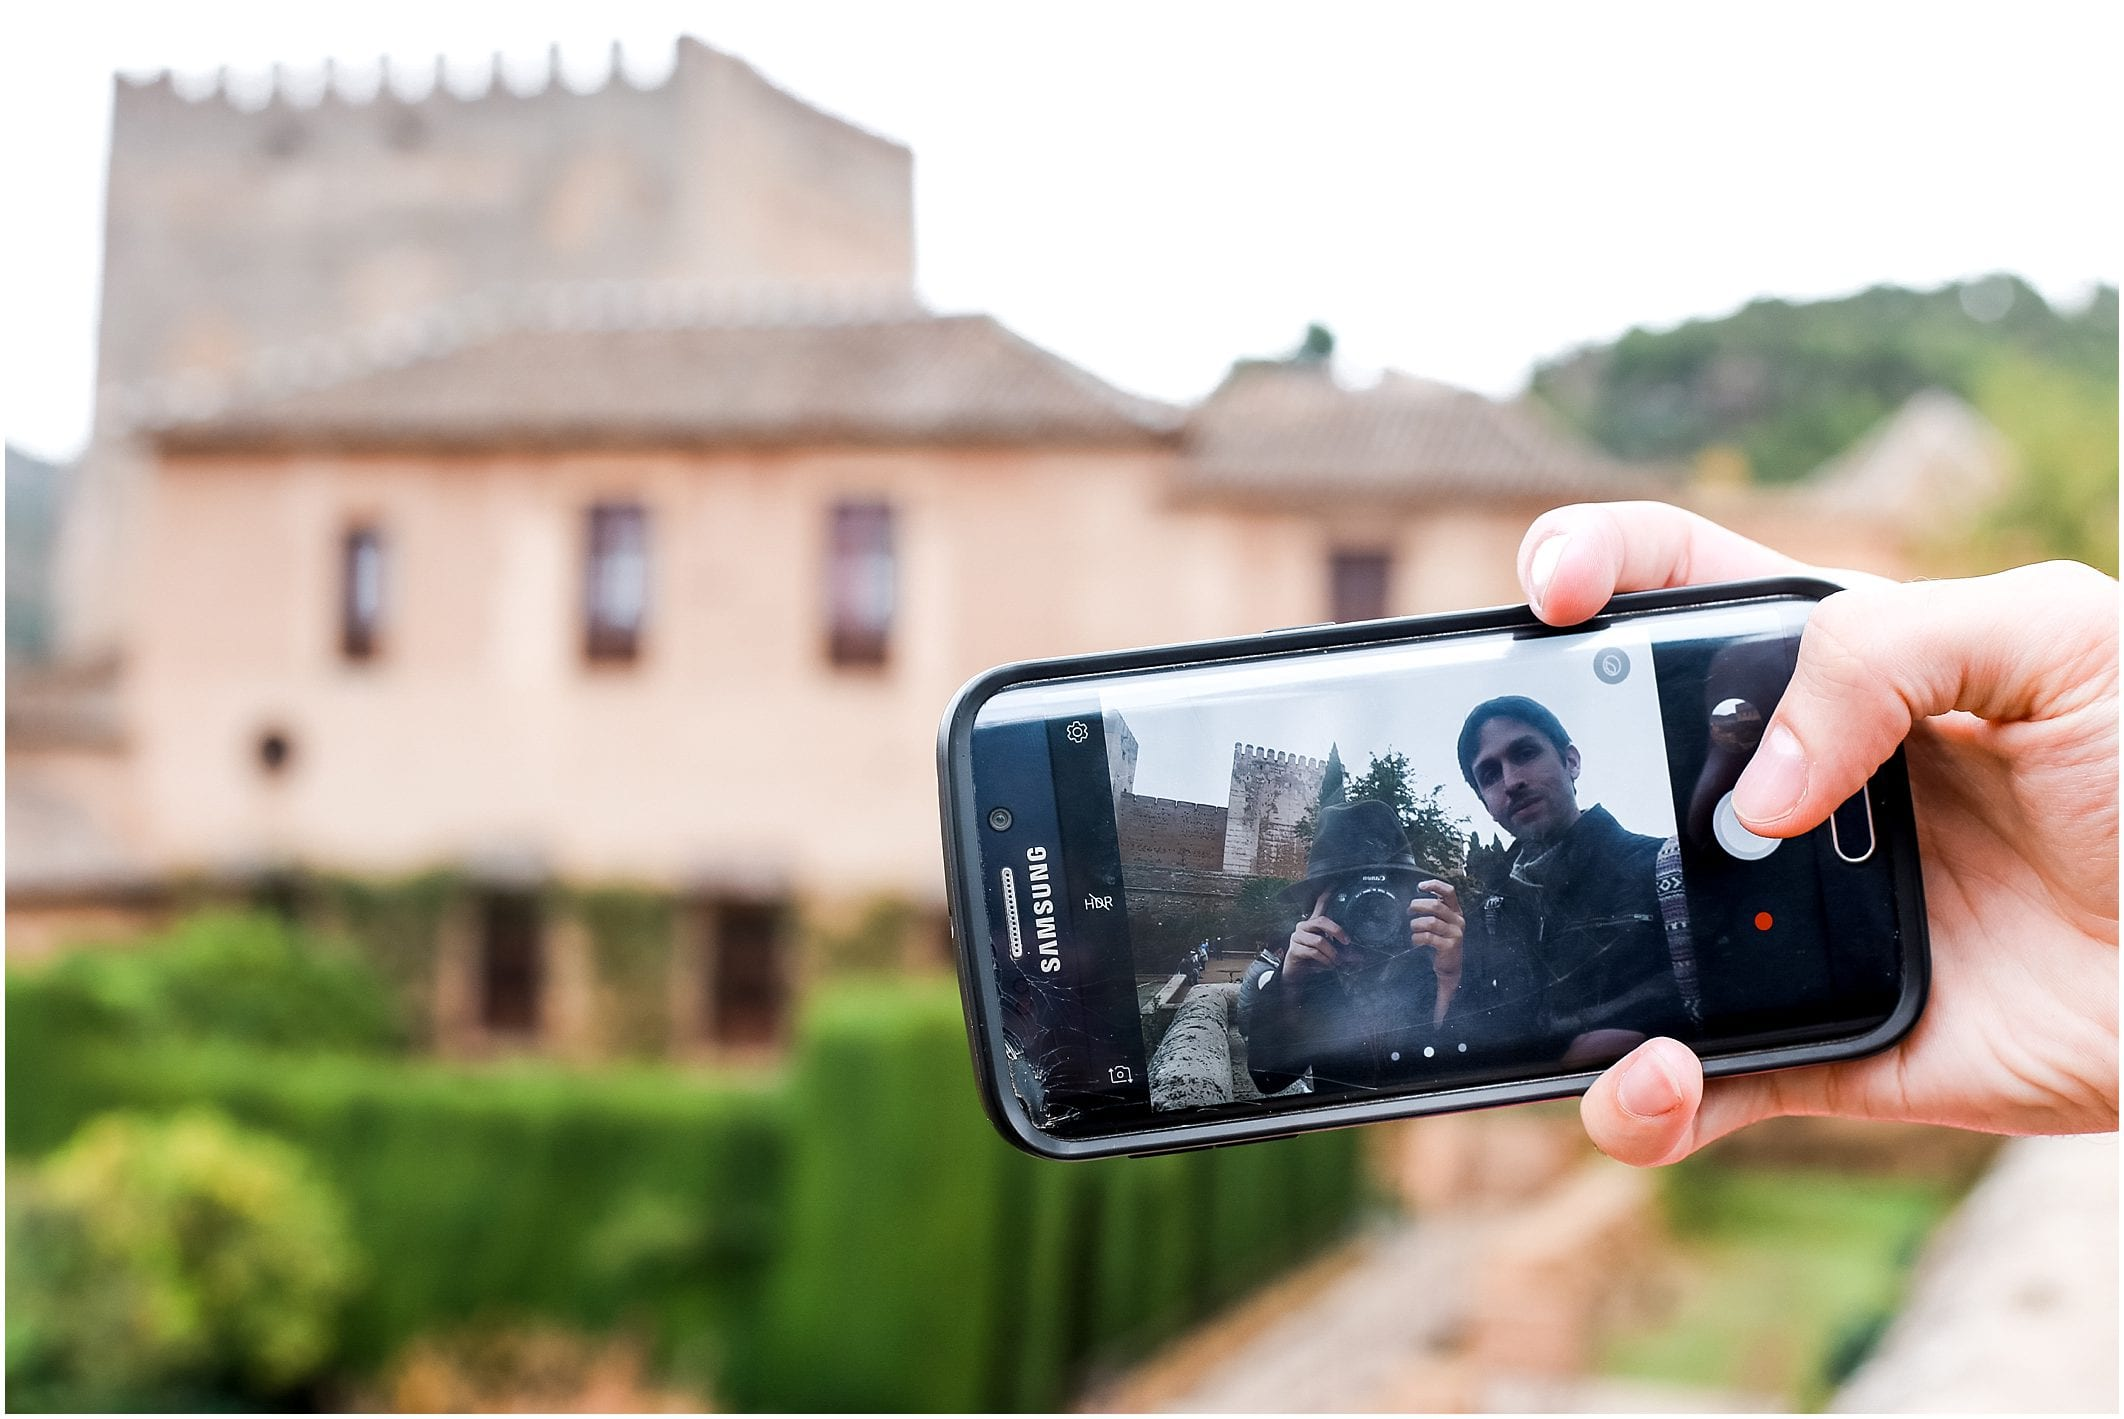 5 Most Underrated Small Cities in Spain You Must Visit! Salamanca, Caceres, Cordoba, Granada, Aranjez - Photographer / blogger Helena Woods